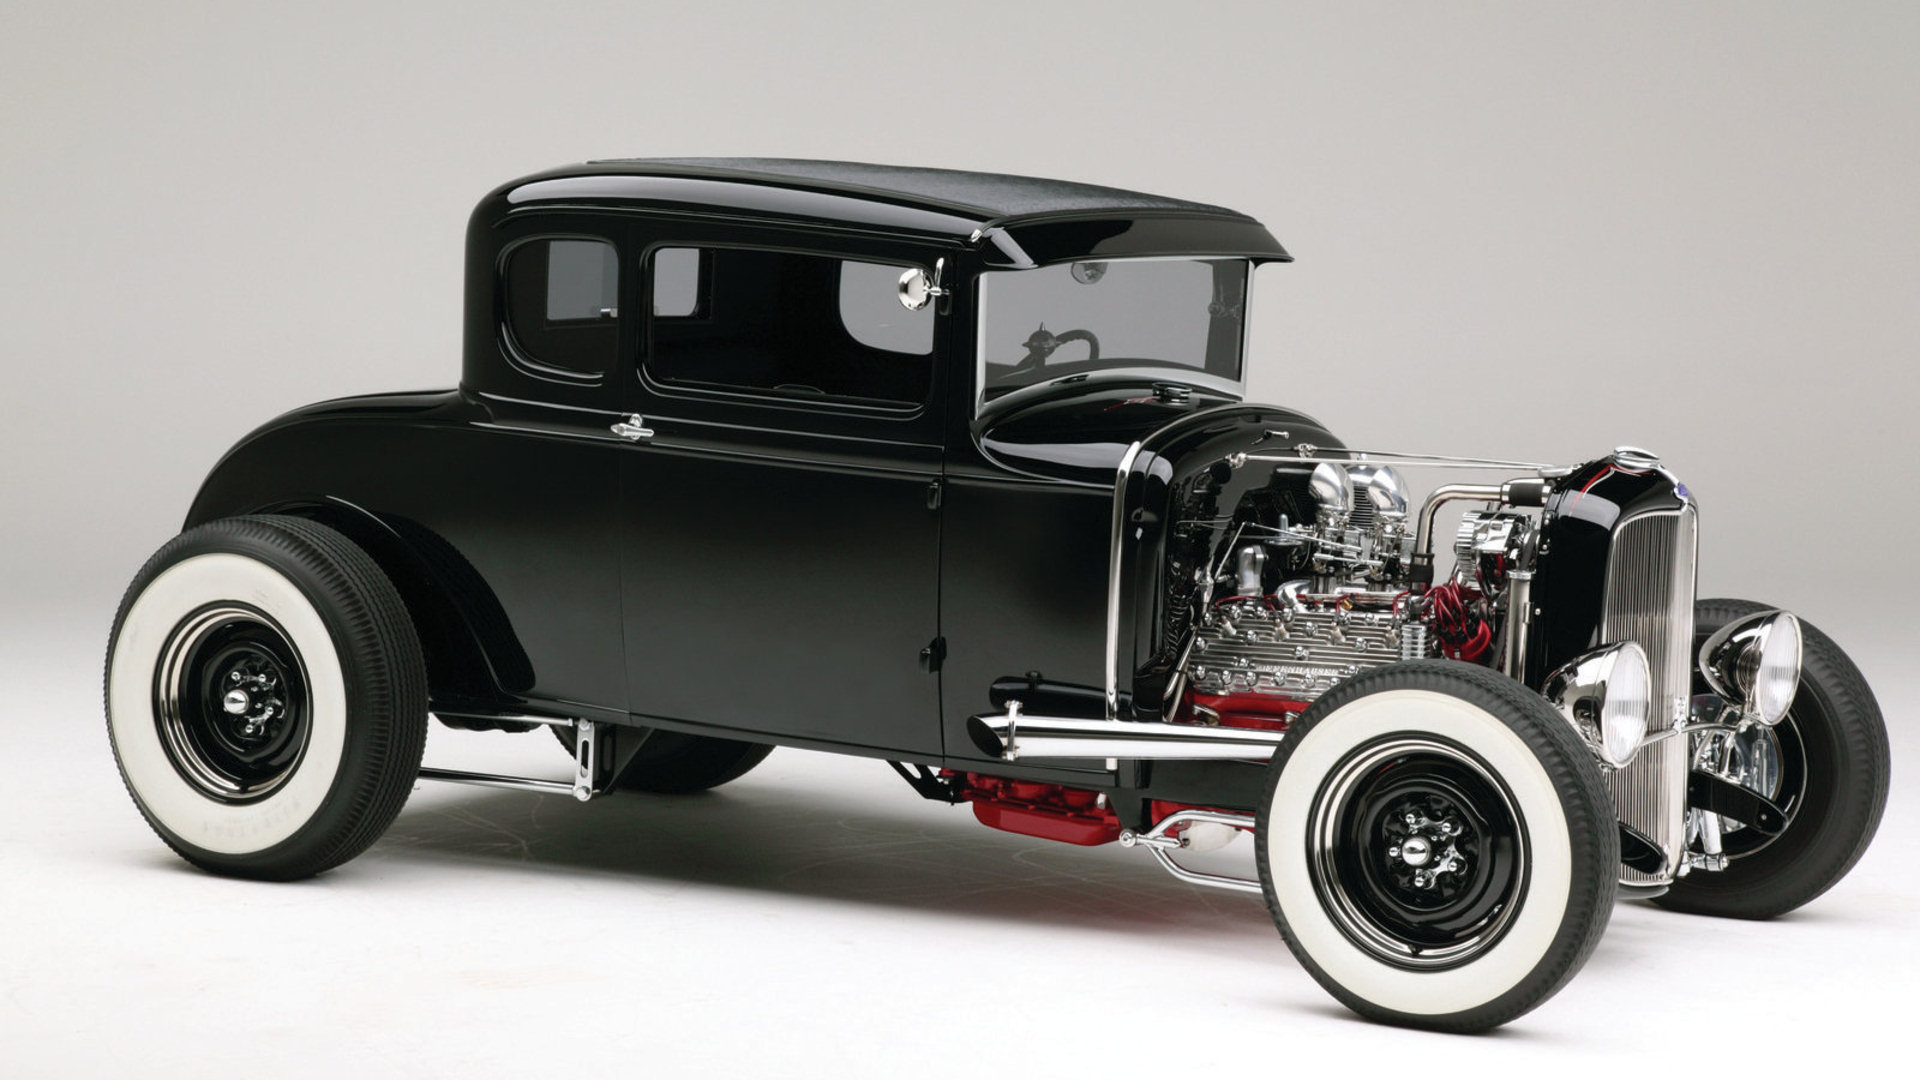 1930 Ford Model A Coupe Hd Wallpaper Background Image